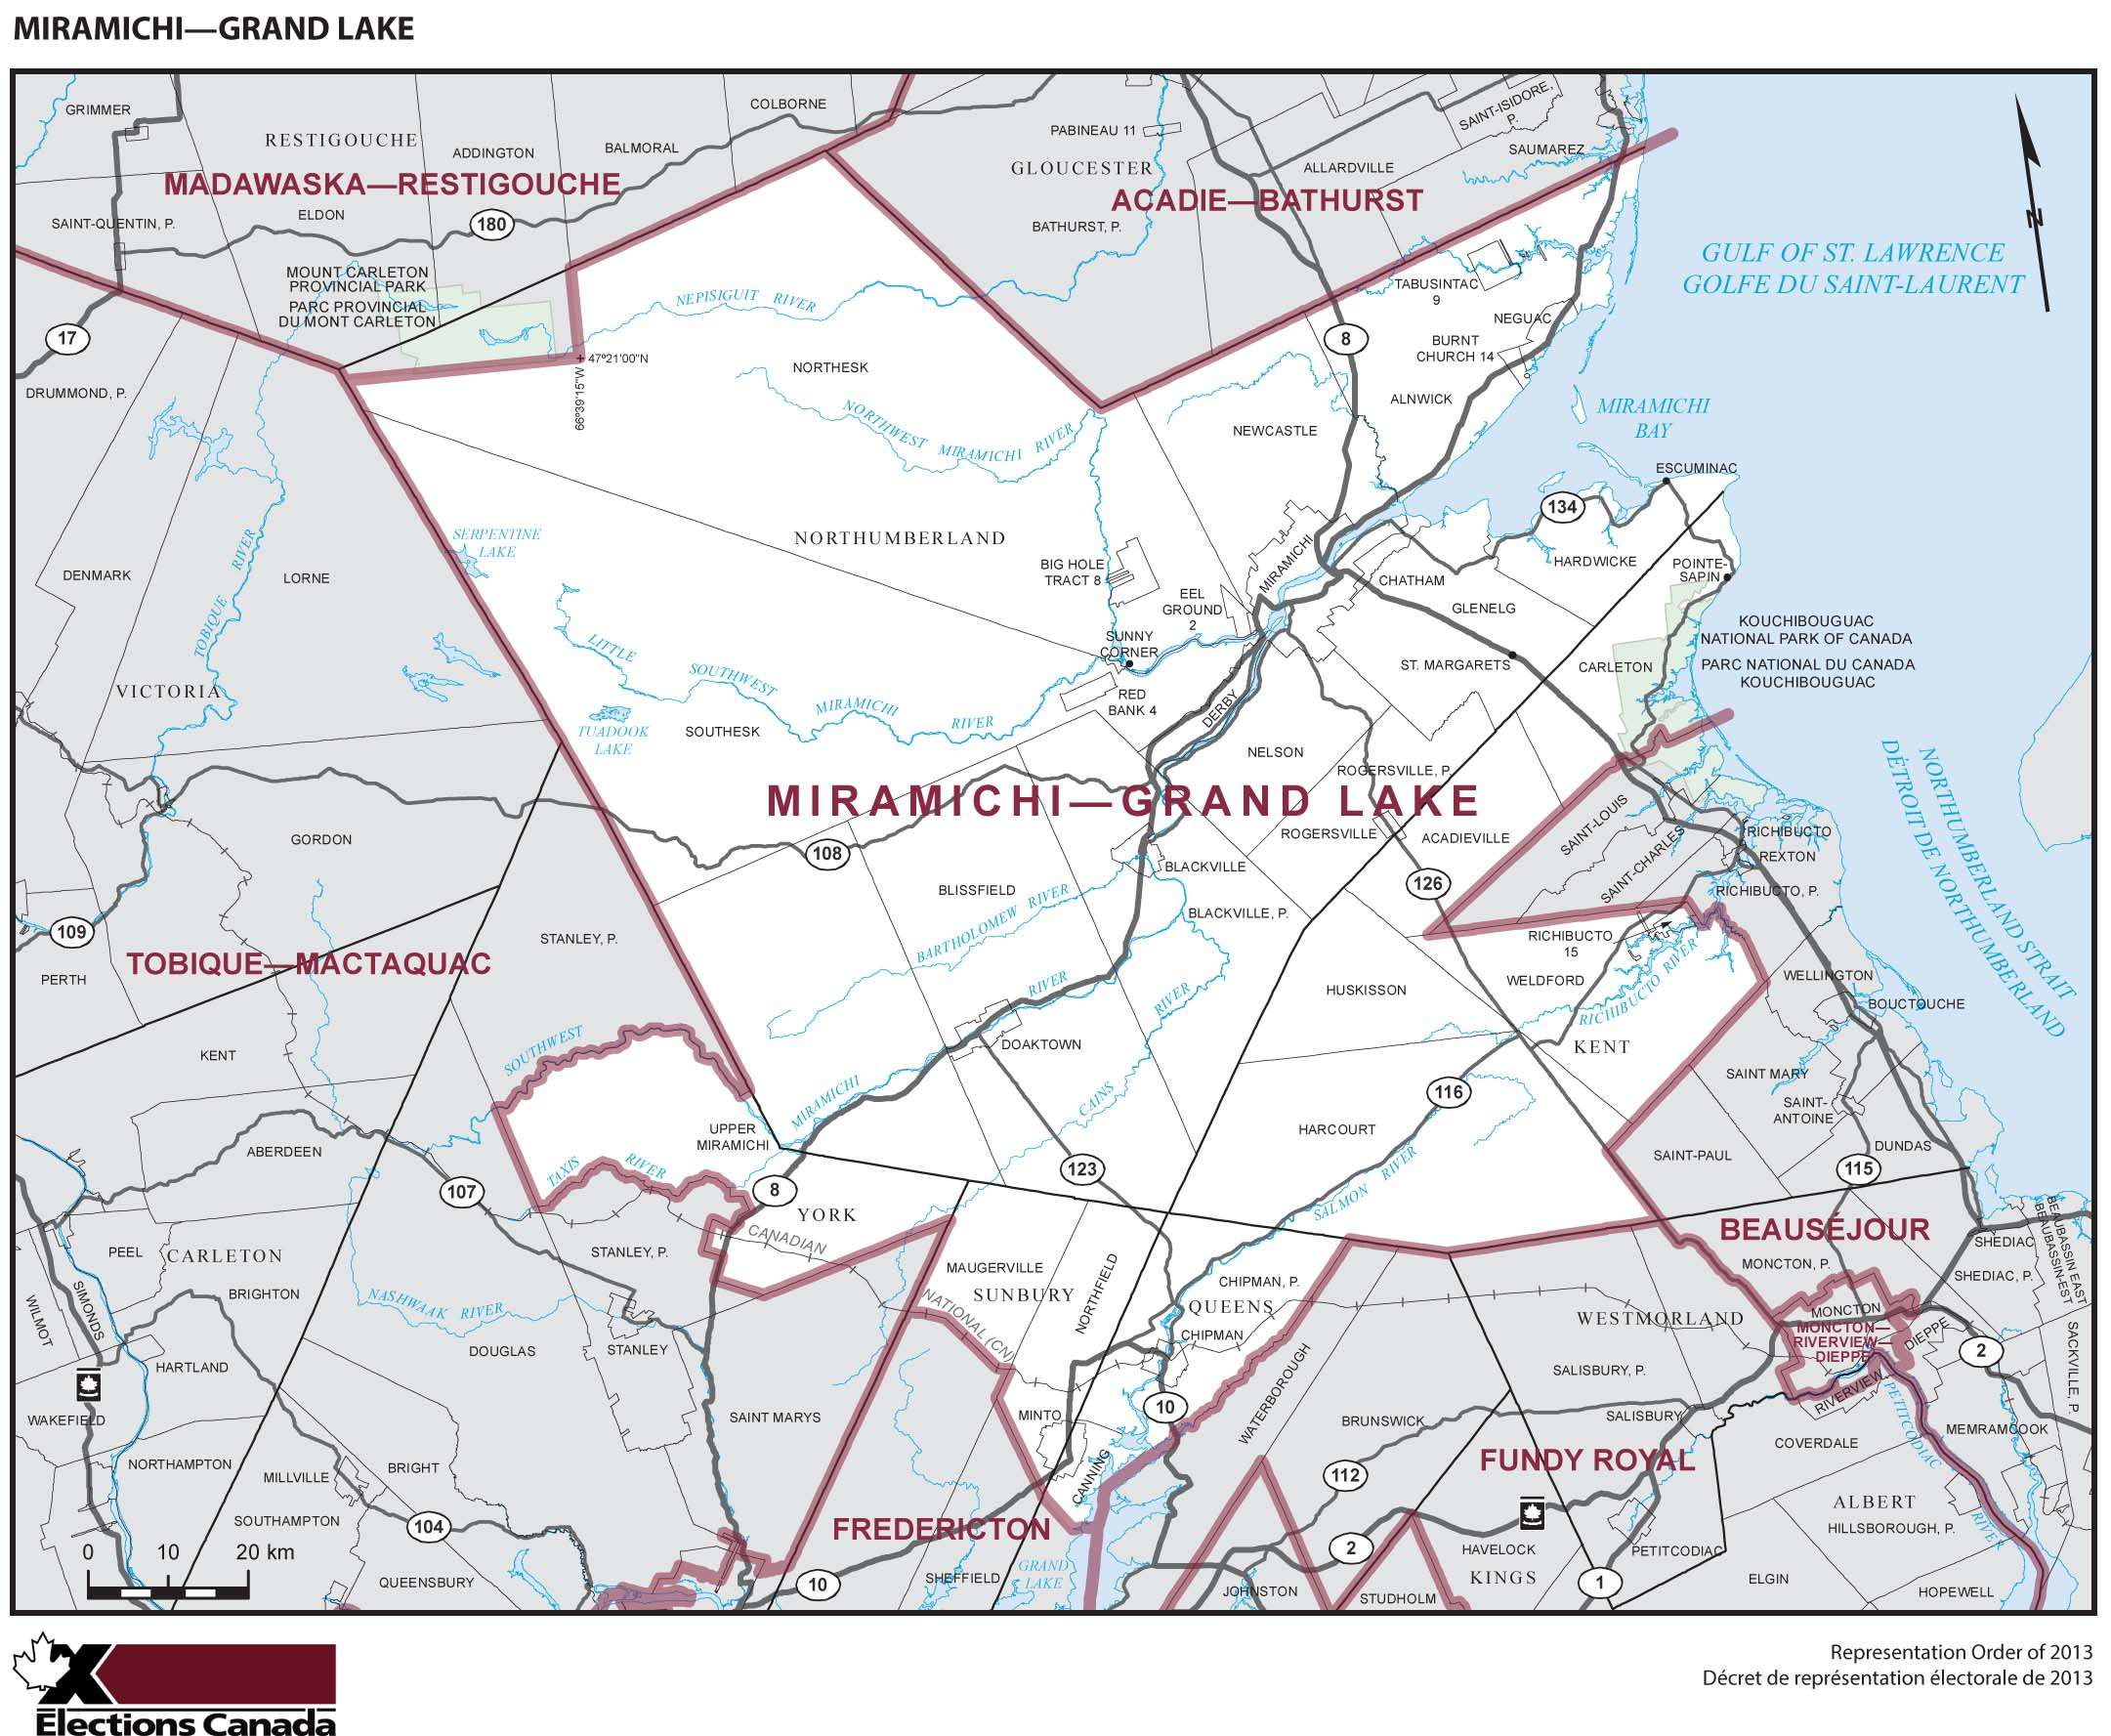 Map: Miramichi--Grand Lake, Federal electoral district, 2013 Representation Order (in white), New Brunswick